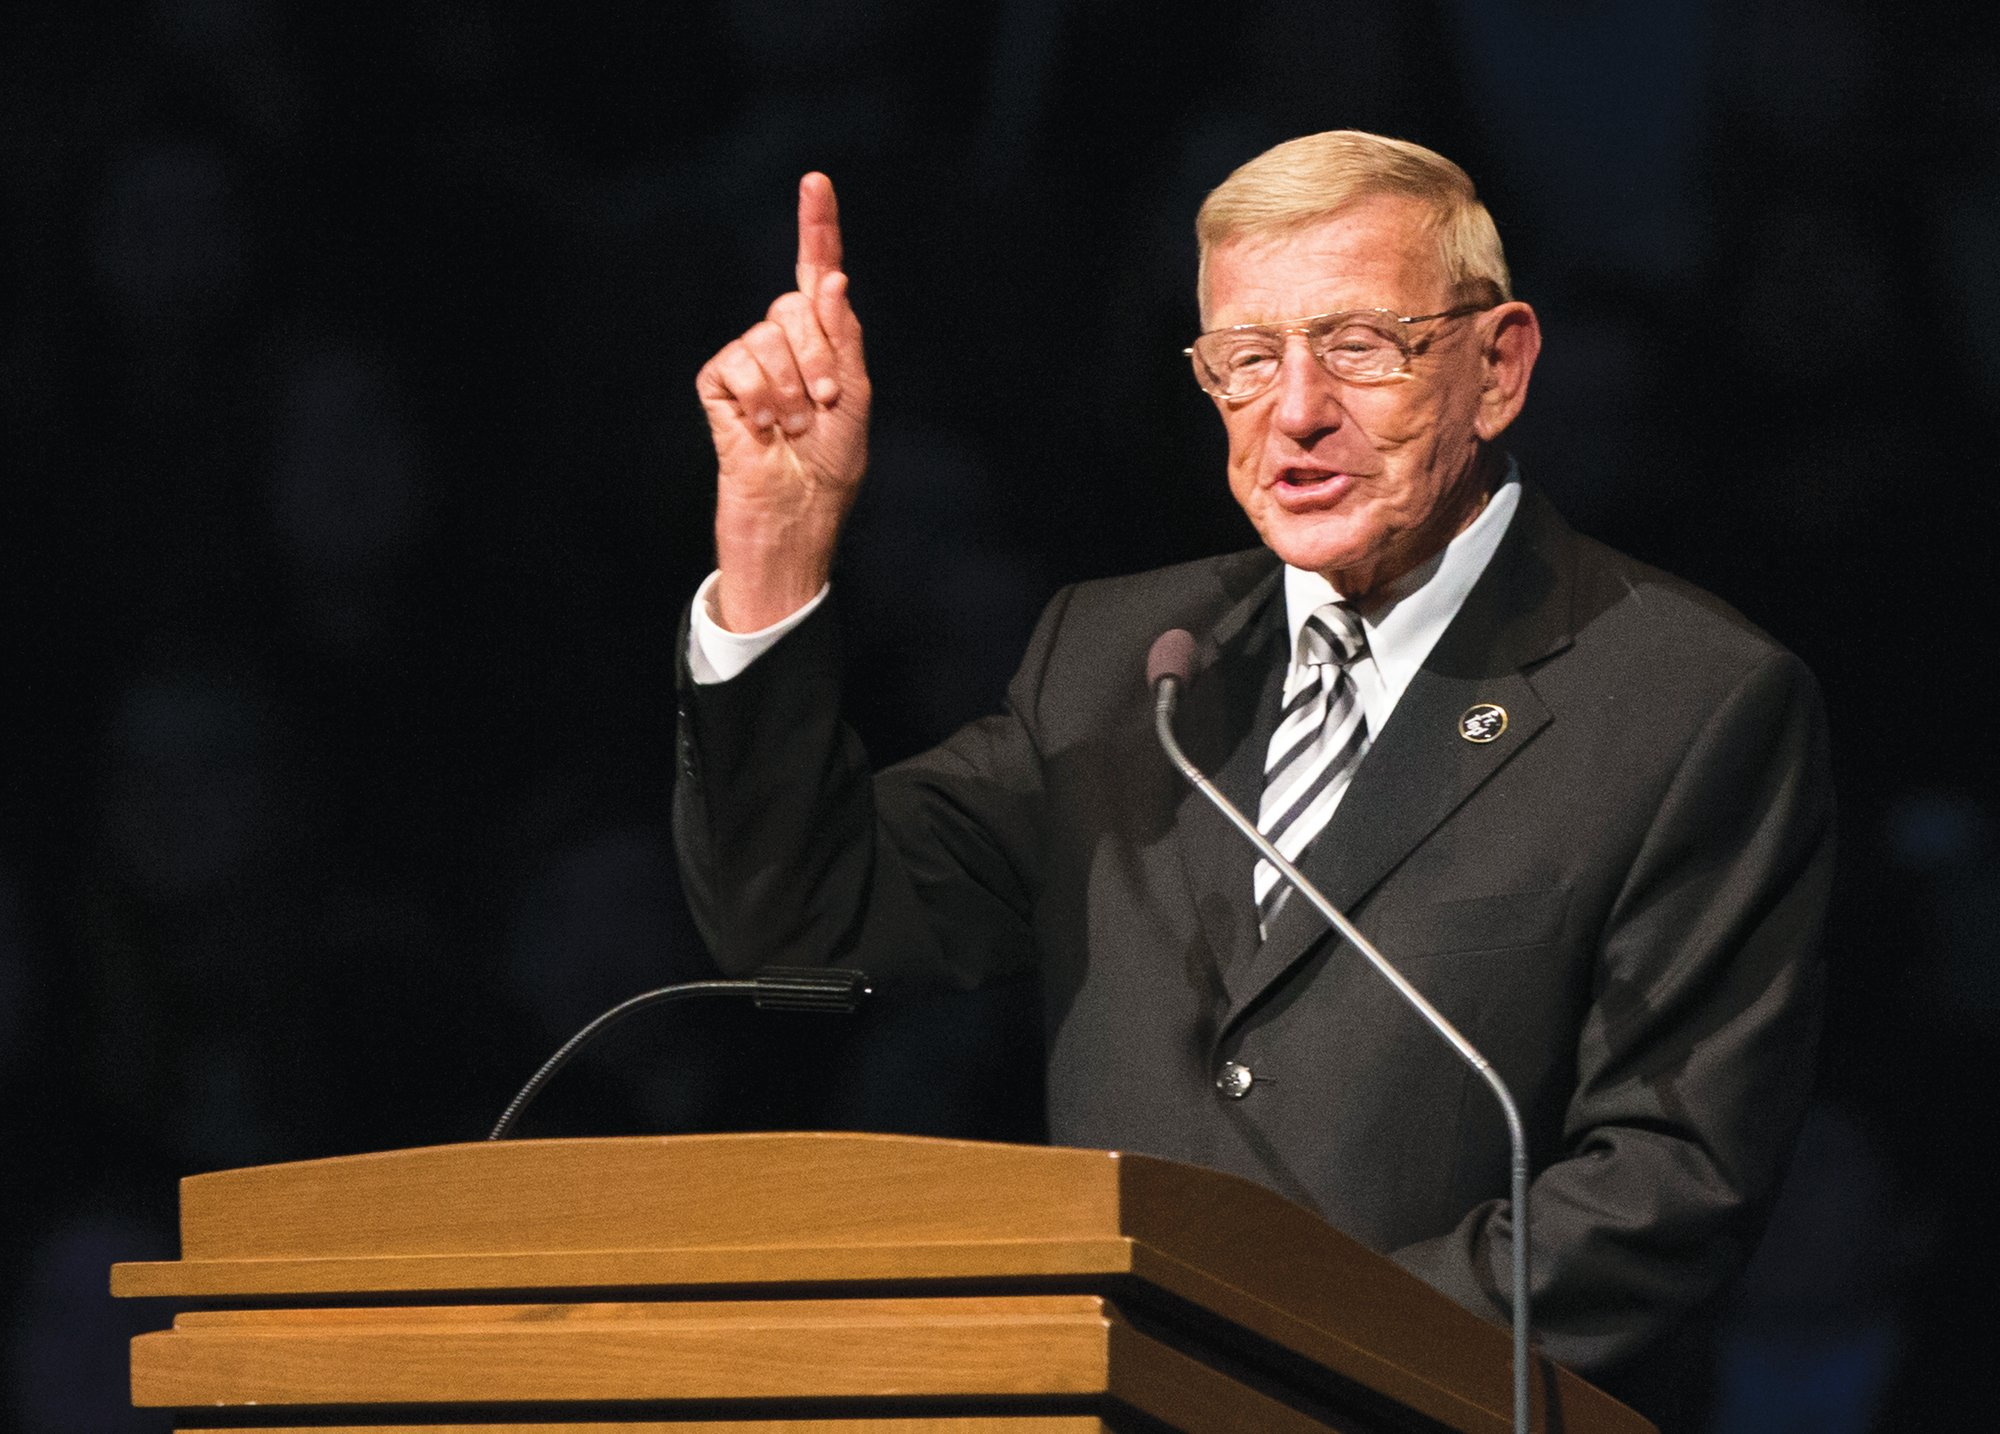 Former Usc Coach Holtz Tests Positive For Coronavirus The Sumter Item